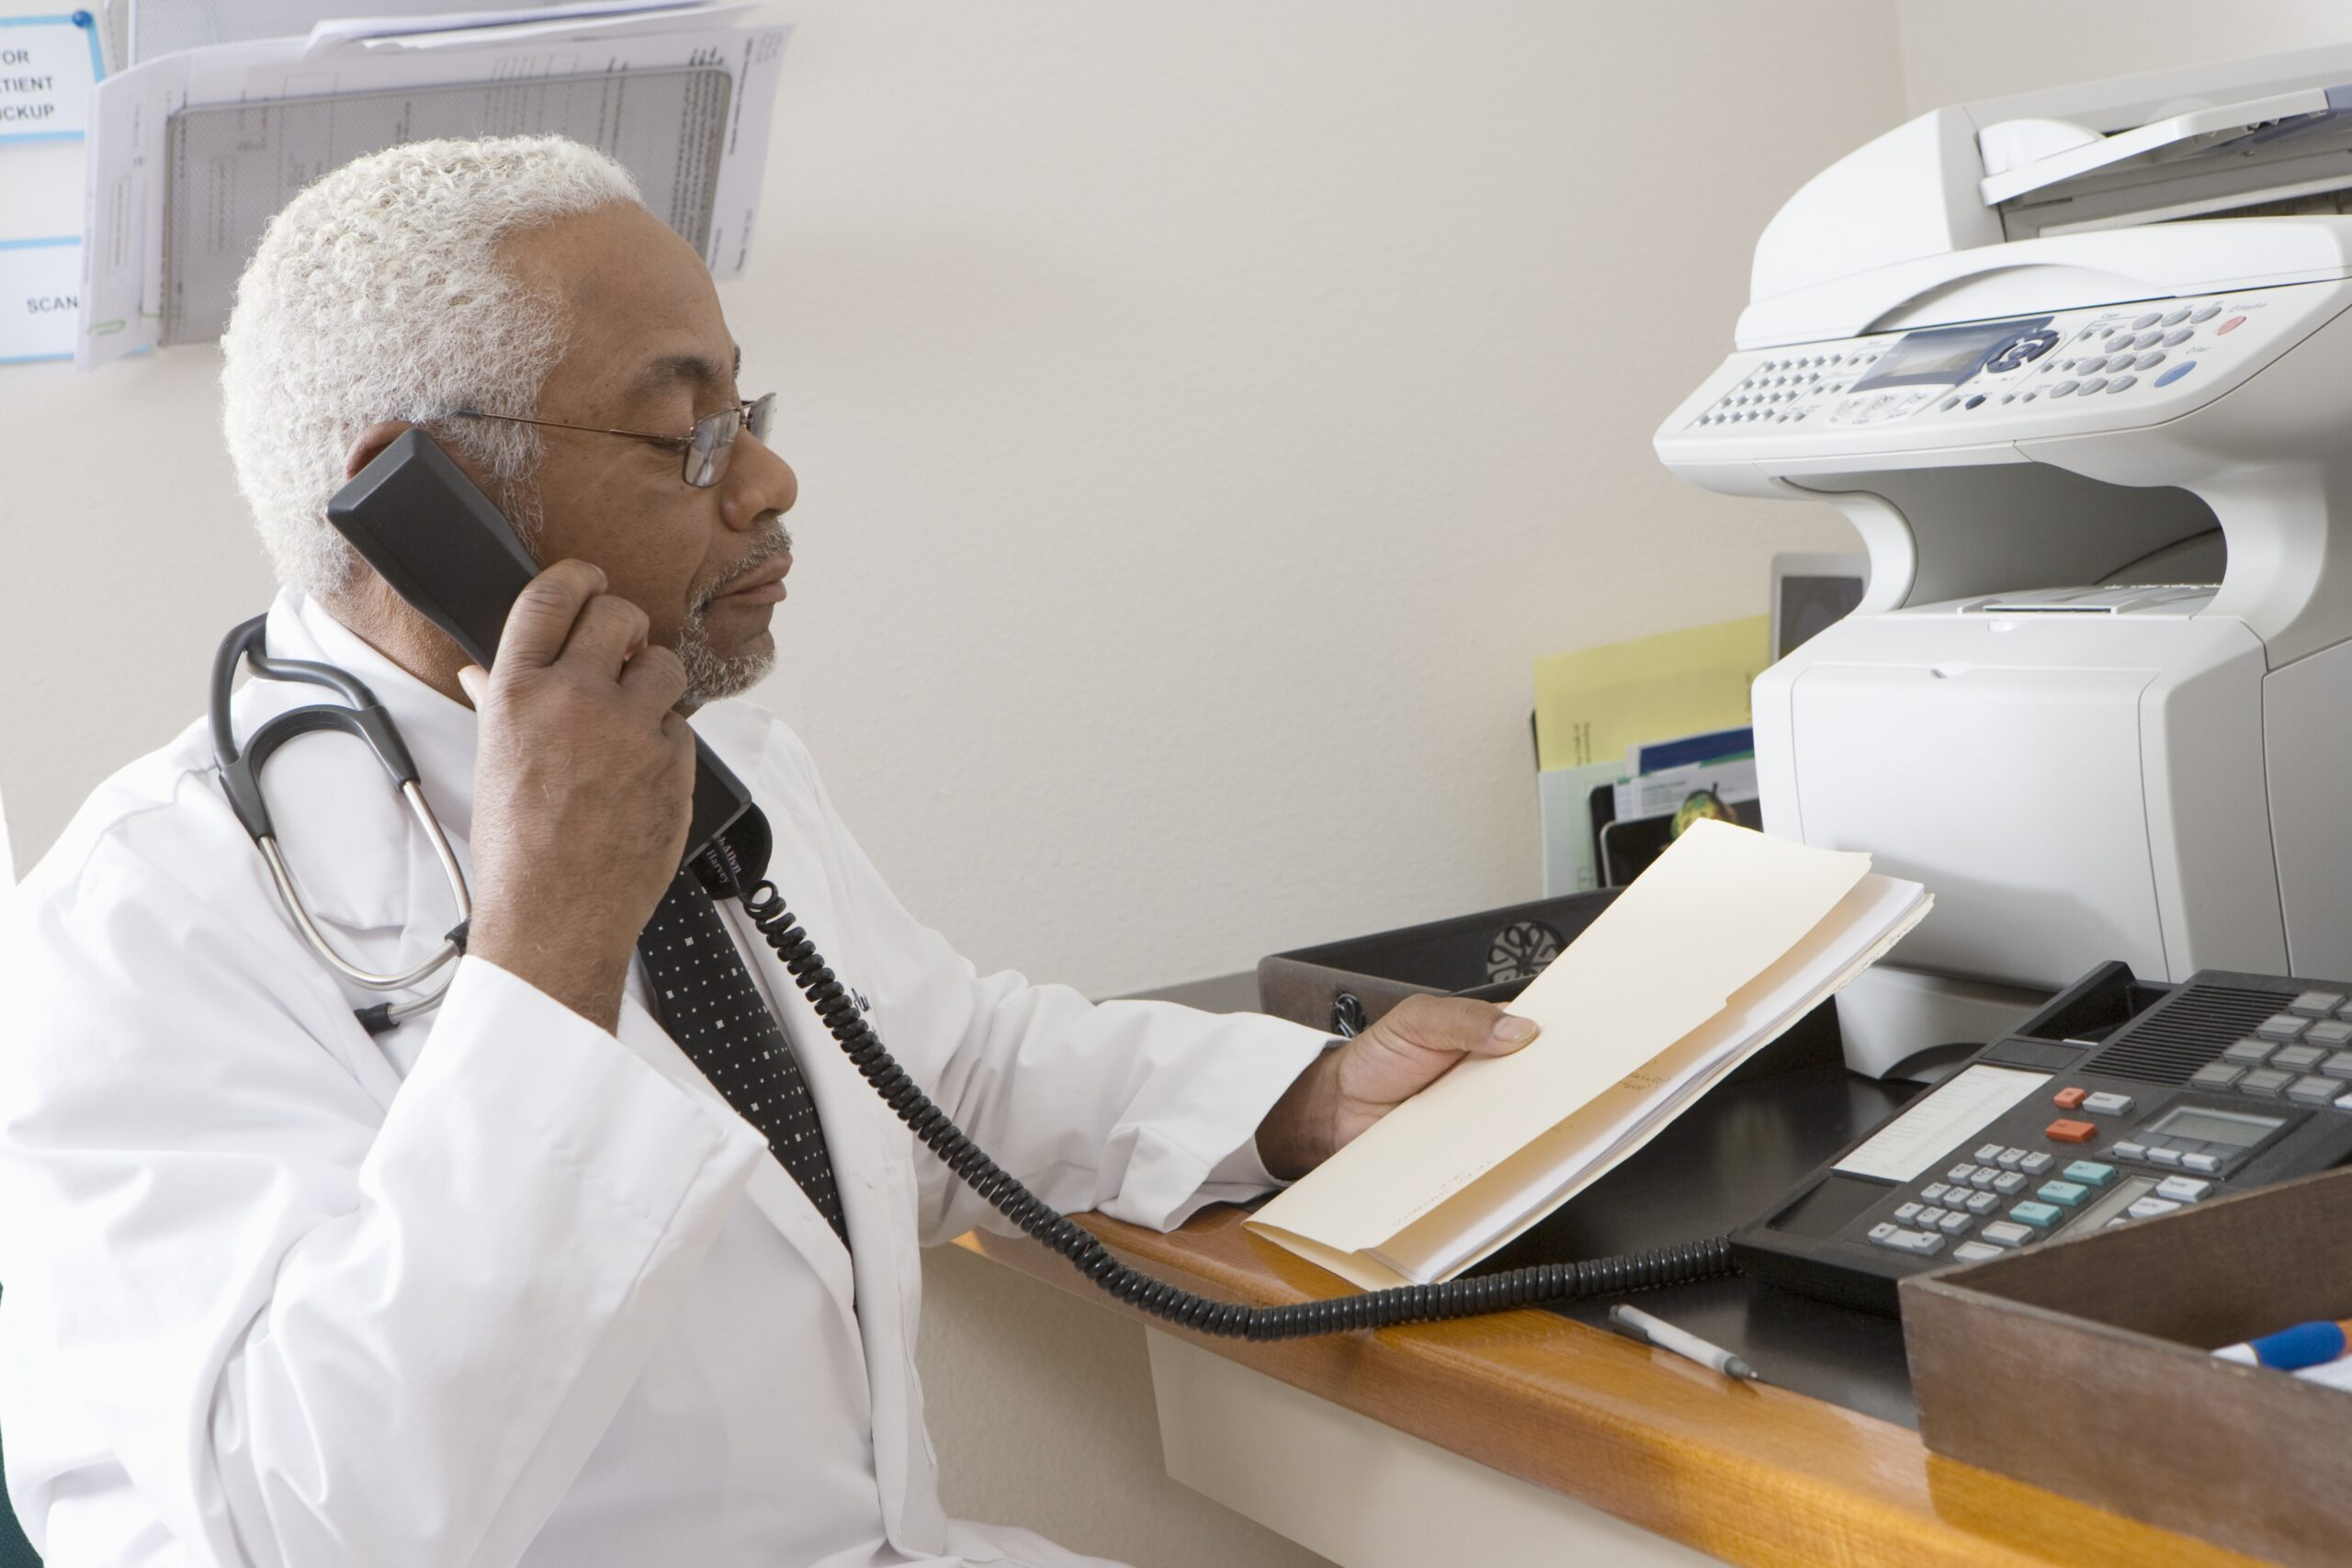 doctor on phone with papers